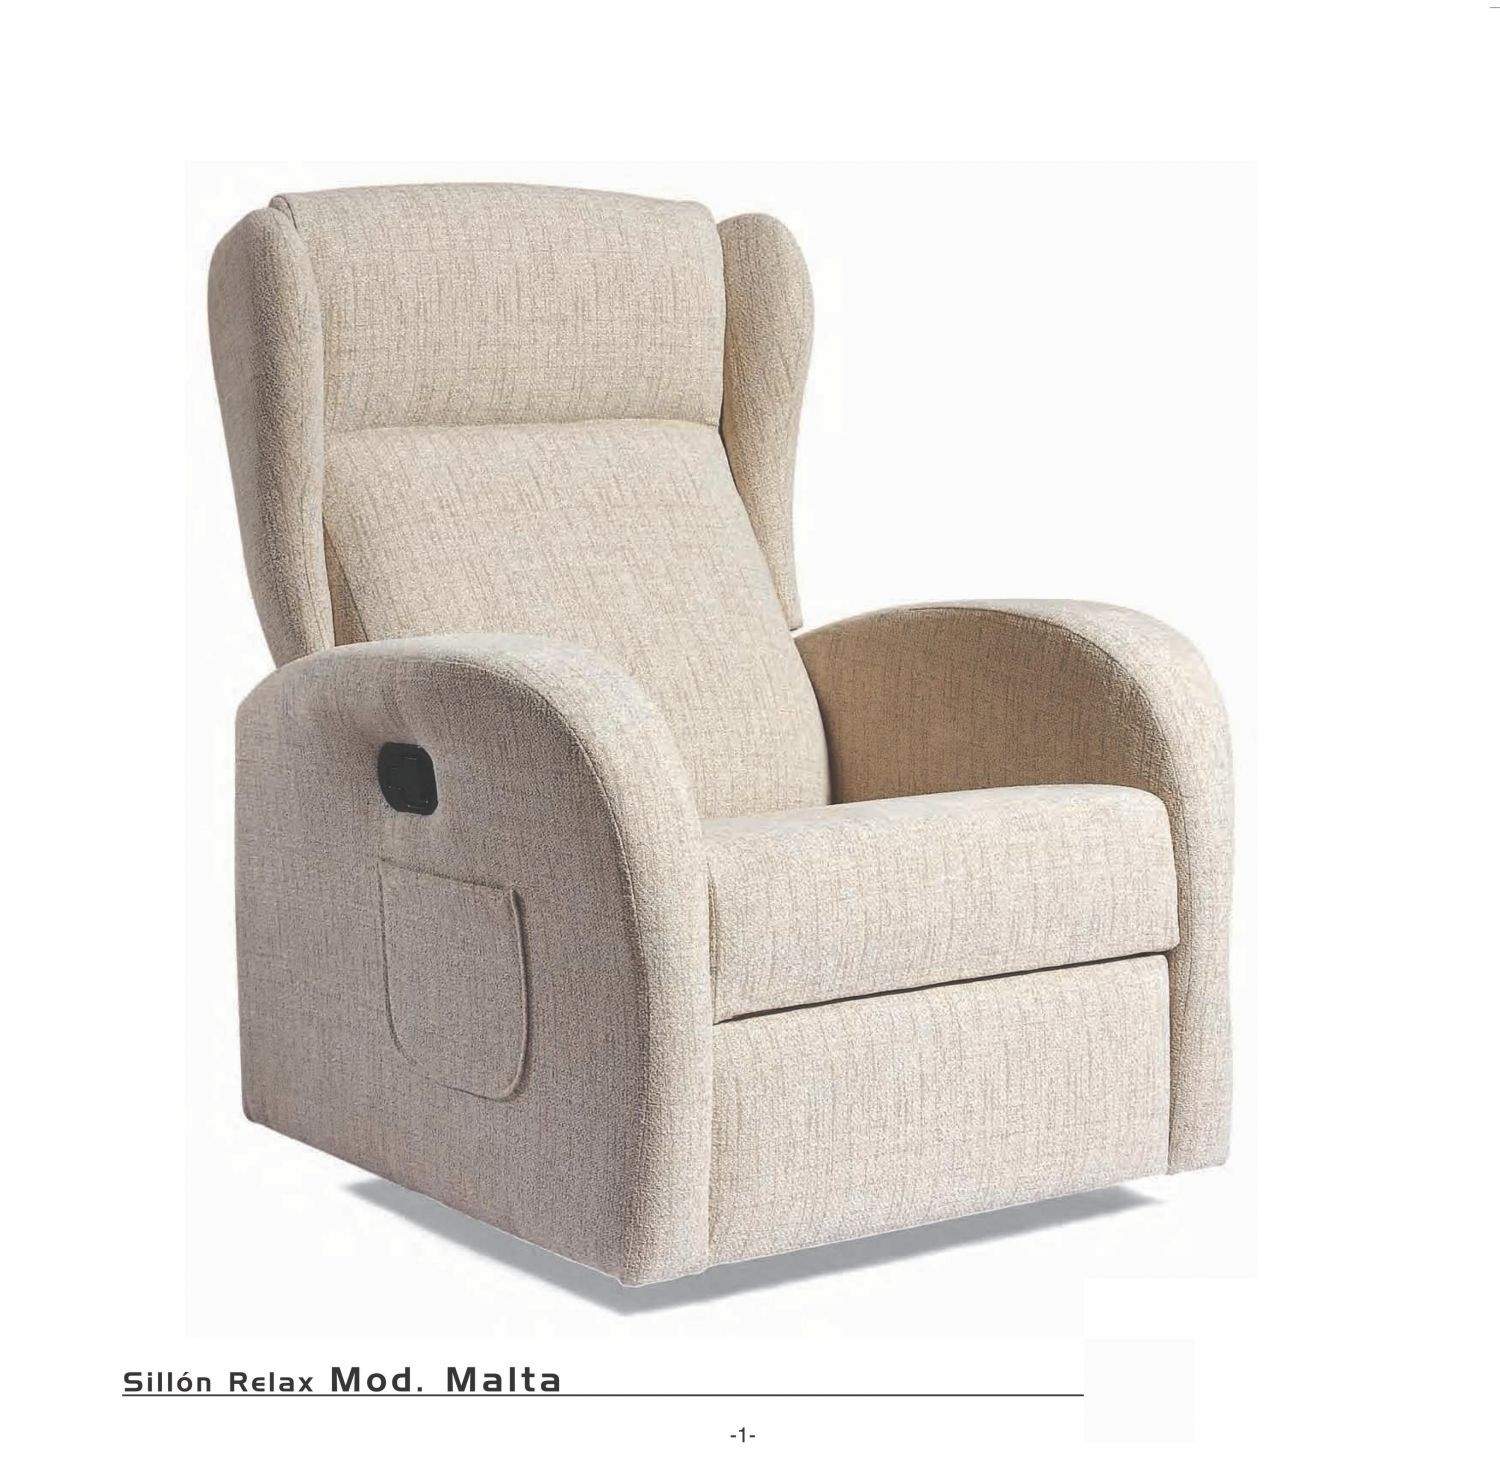 Sillon relax motor elevable muebles valencia - Sofas y sillones relax ...